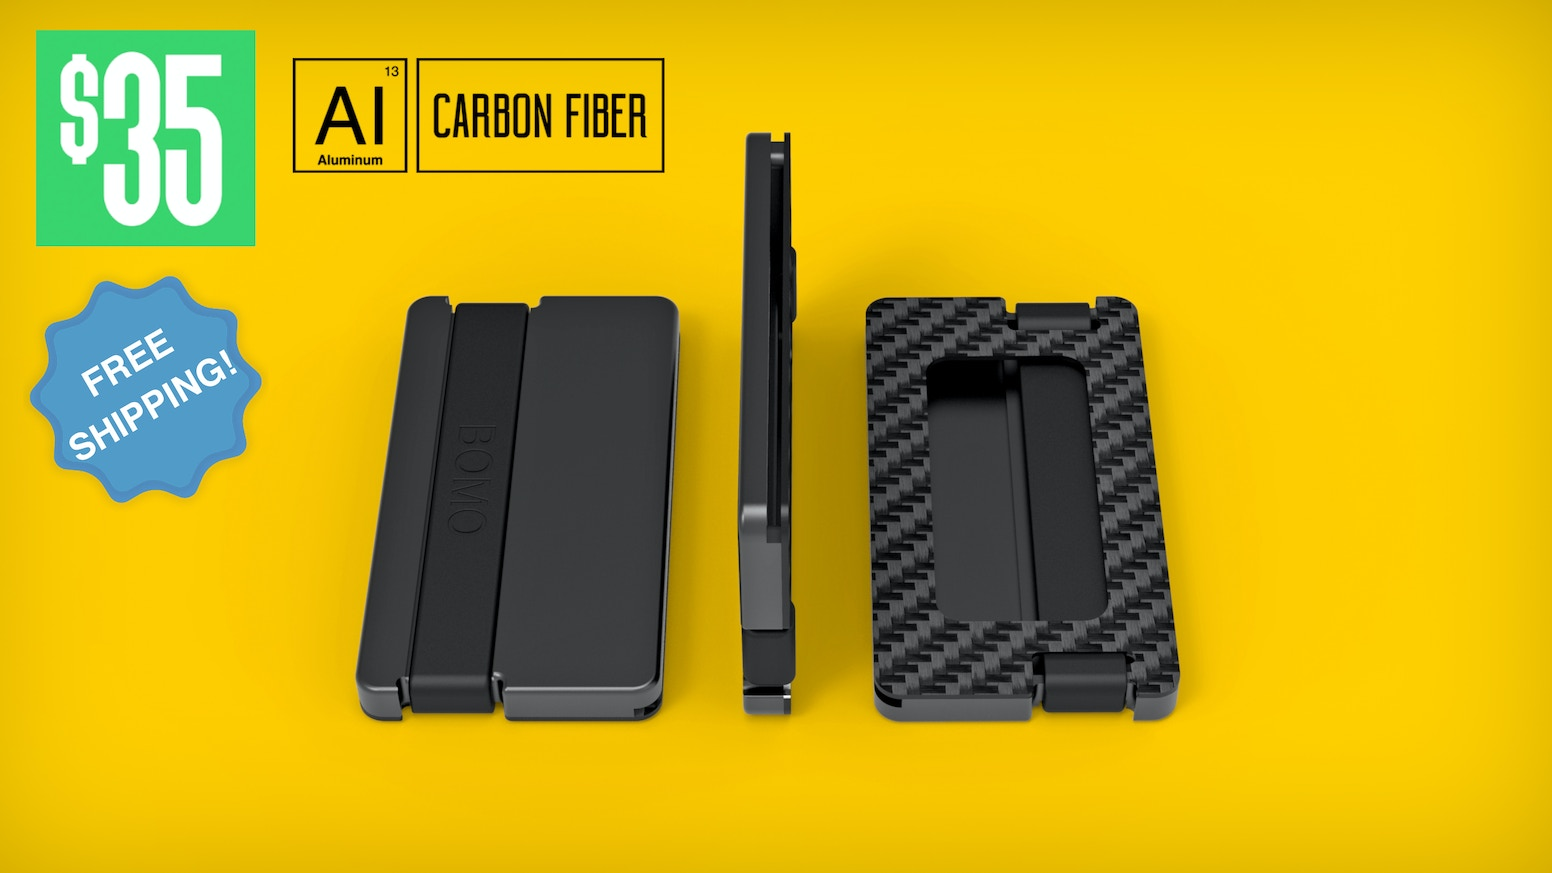 Super Slim RFID protected wallet that is made from premium materials! Both Functional and versatile!